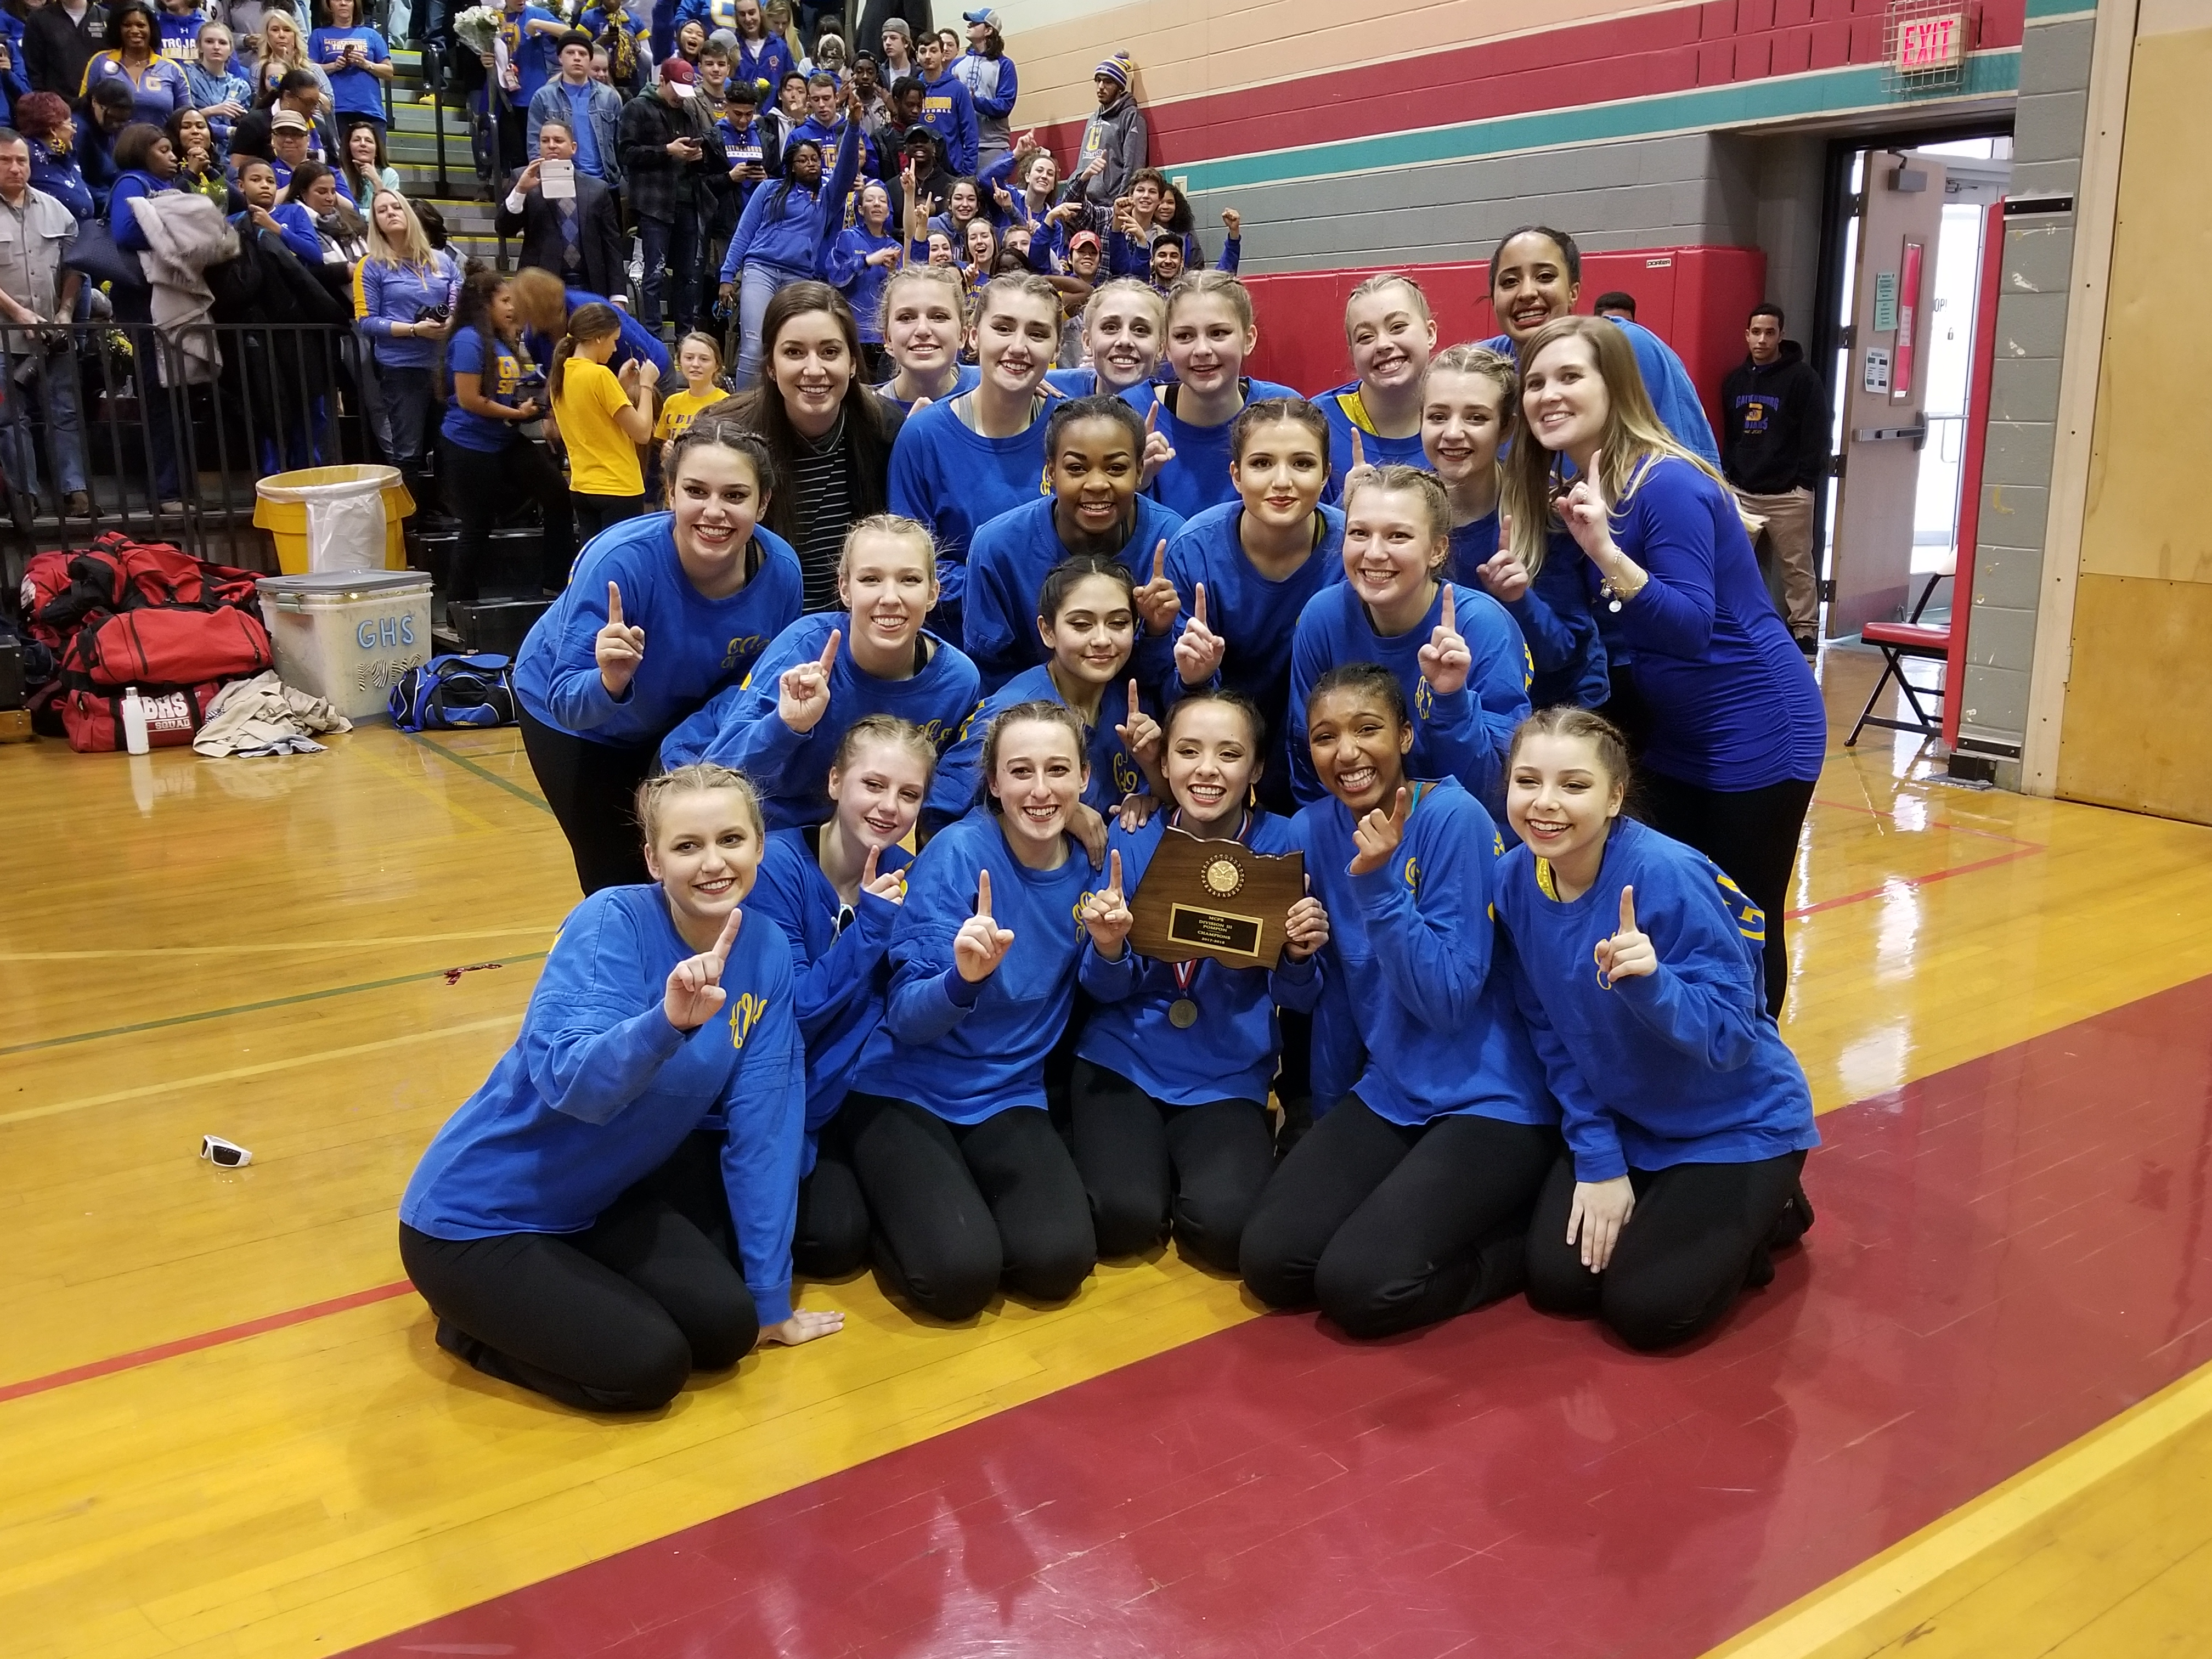 Poms are Division 3 Champions